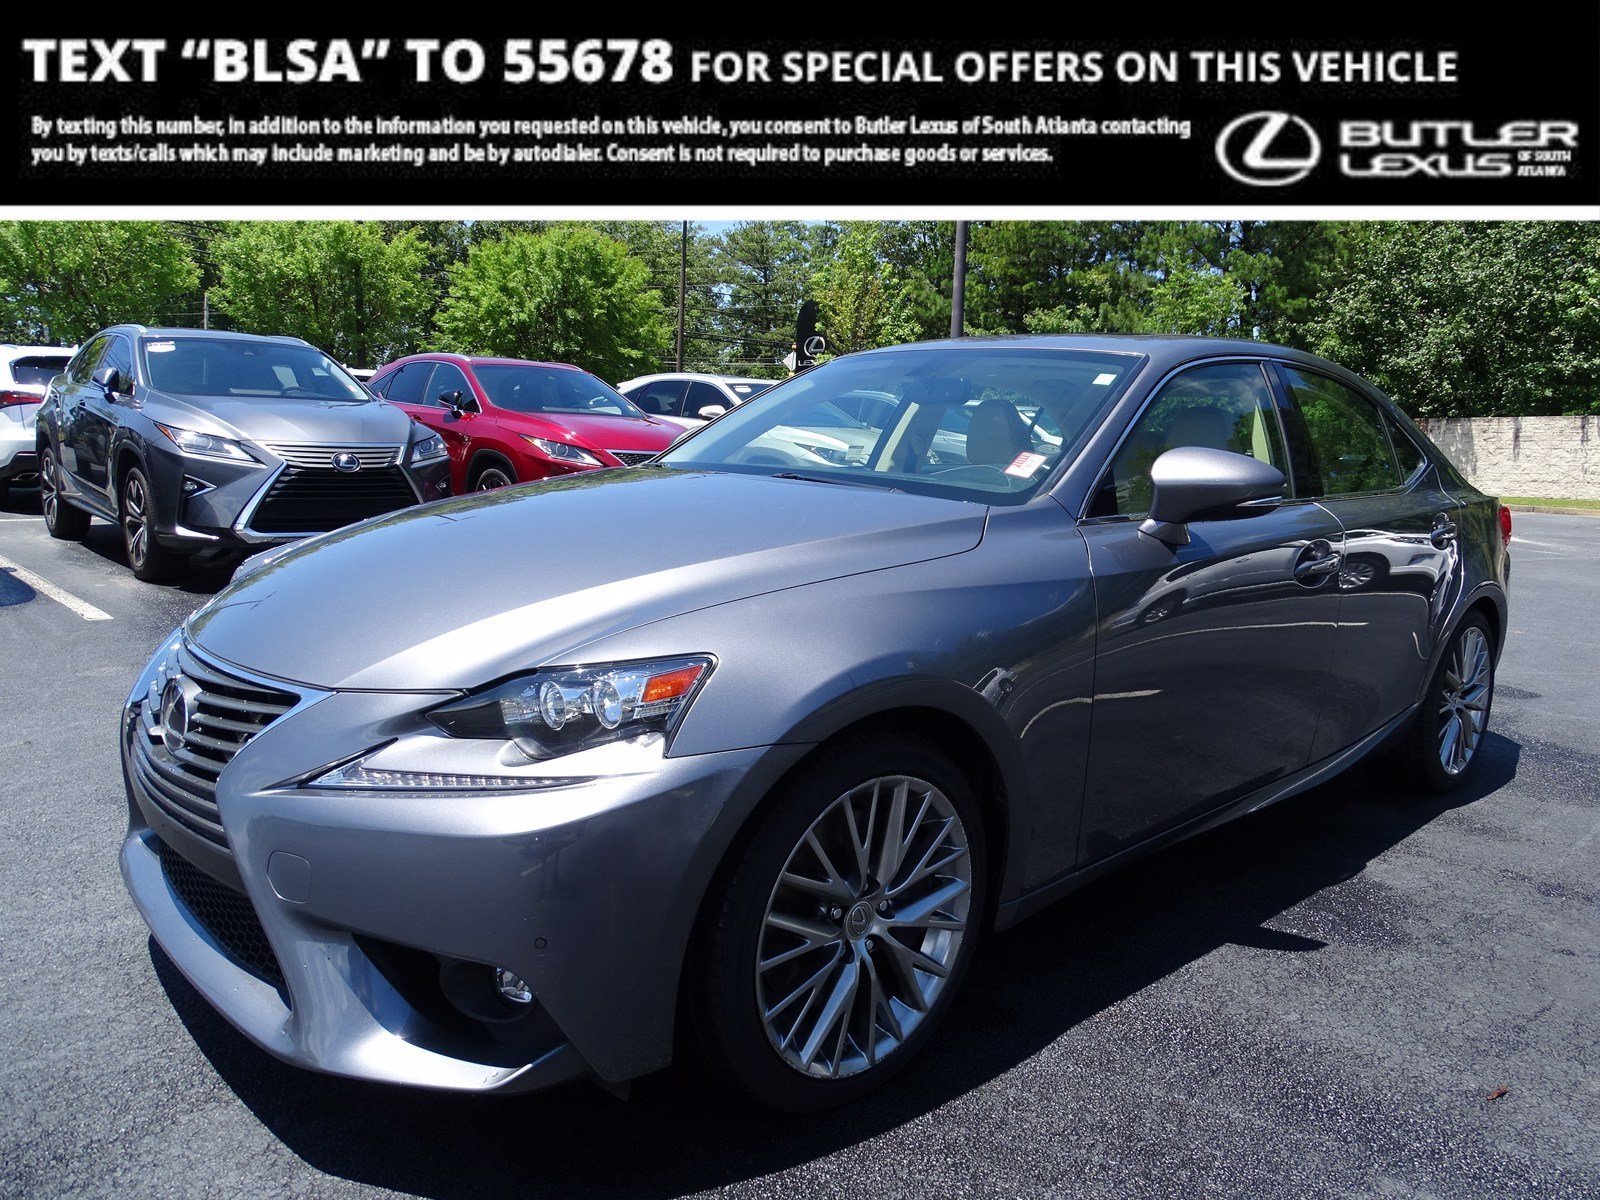 Certified Pre-Owned 2016 Lexus IS 200t 200t